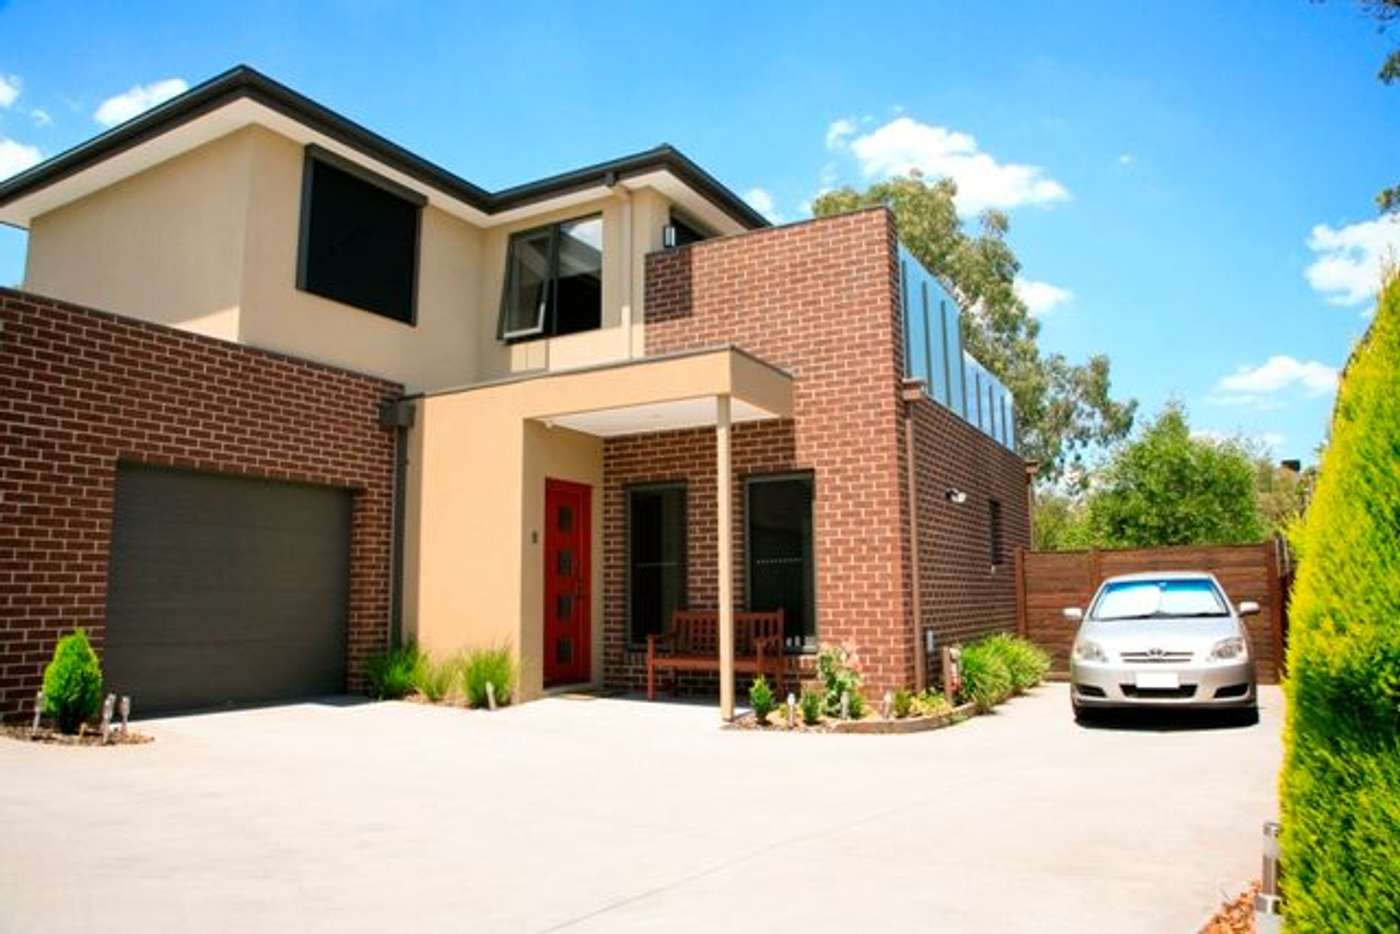 Main view of Homely house listing, 2/2 Kneale Drive, Box Hill North VIC 3129